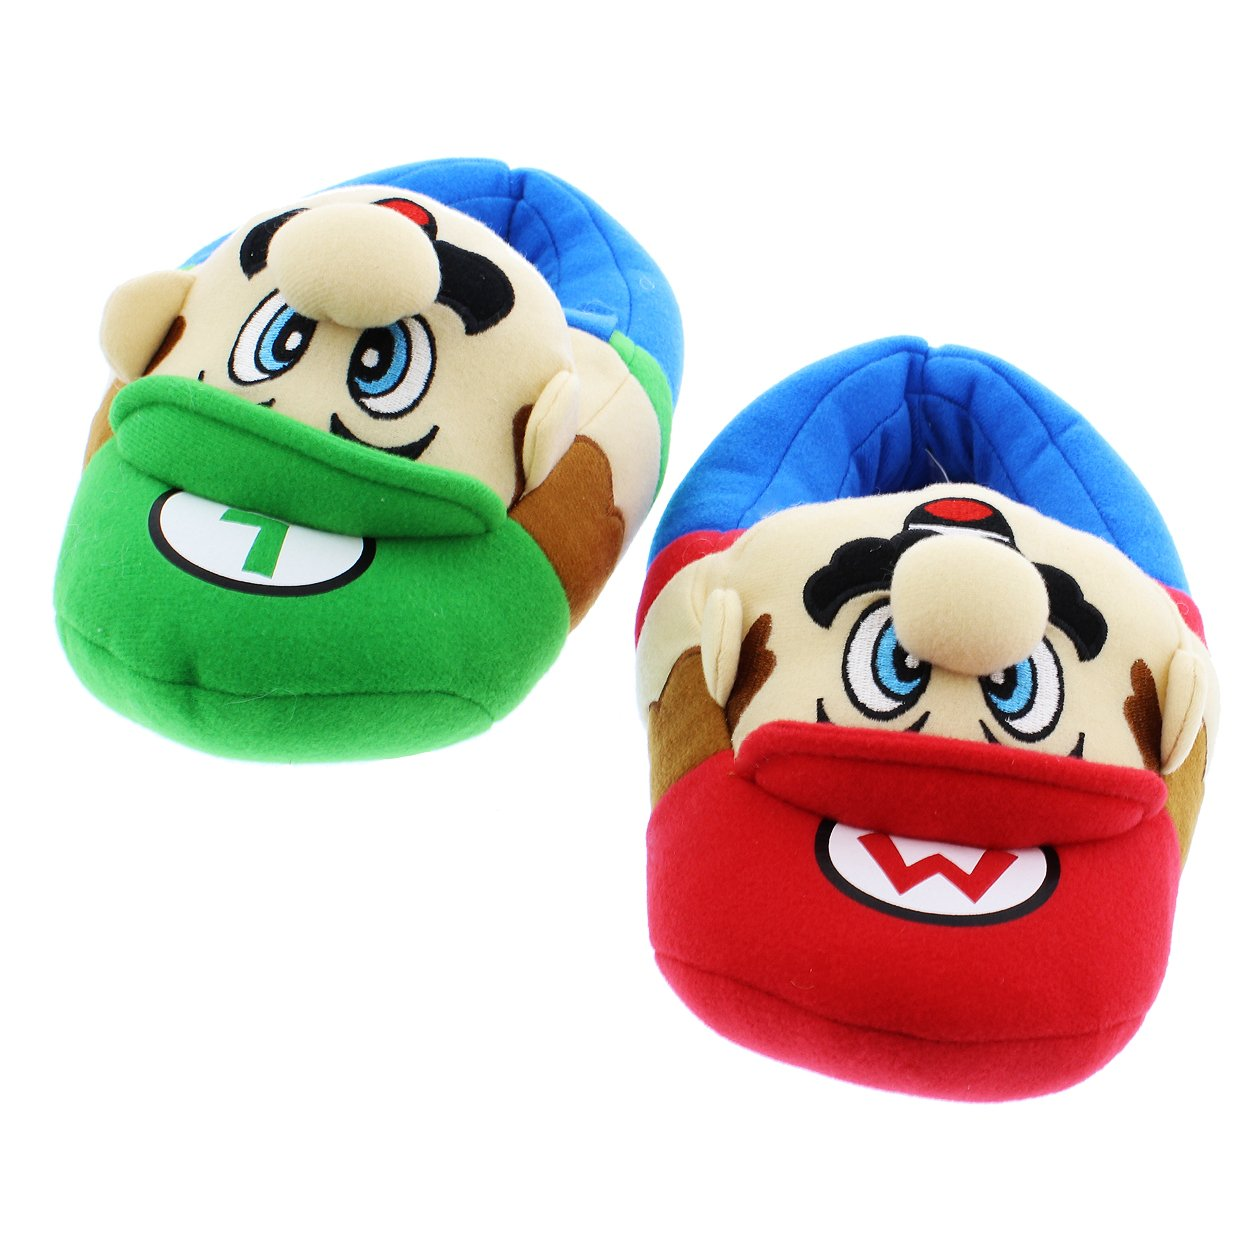 152b931ee19 Get Quotations · Super Mario Brothers Boys Plush Slippers (Little Kid Big  Kid)